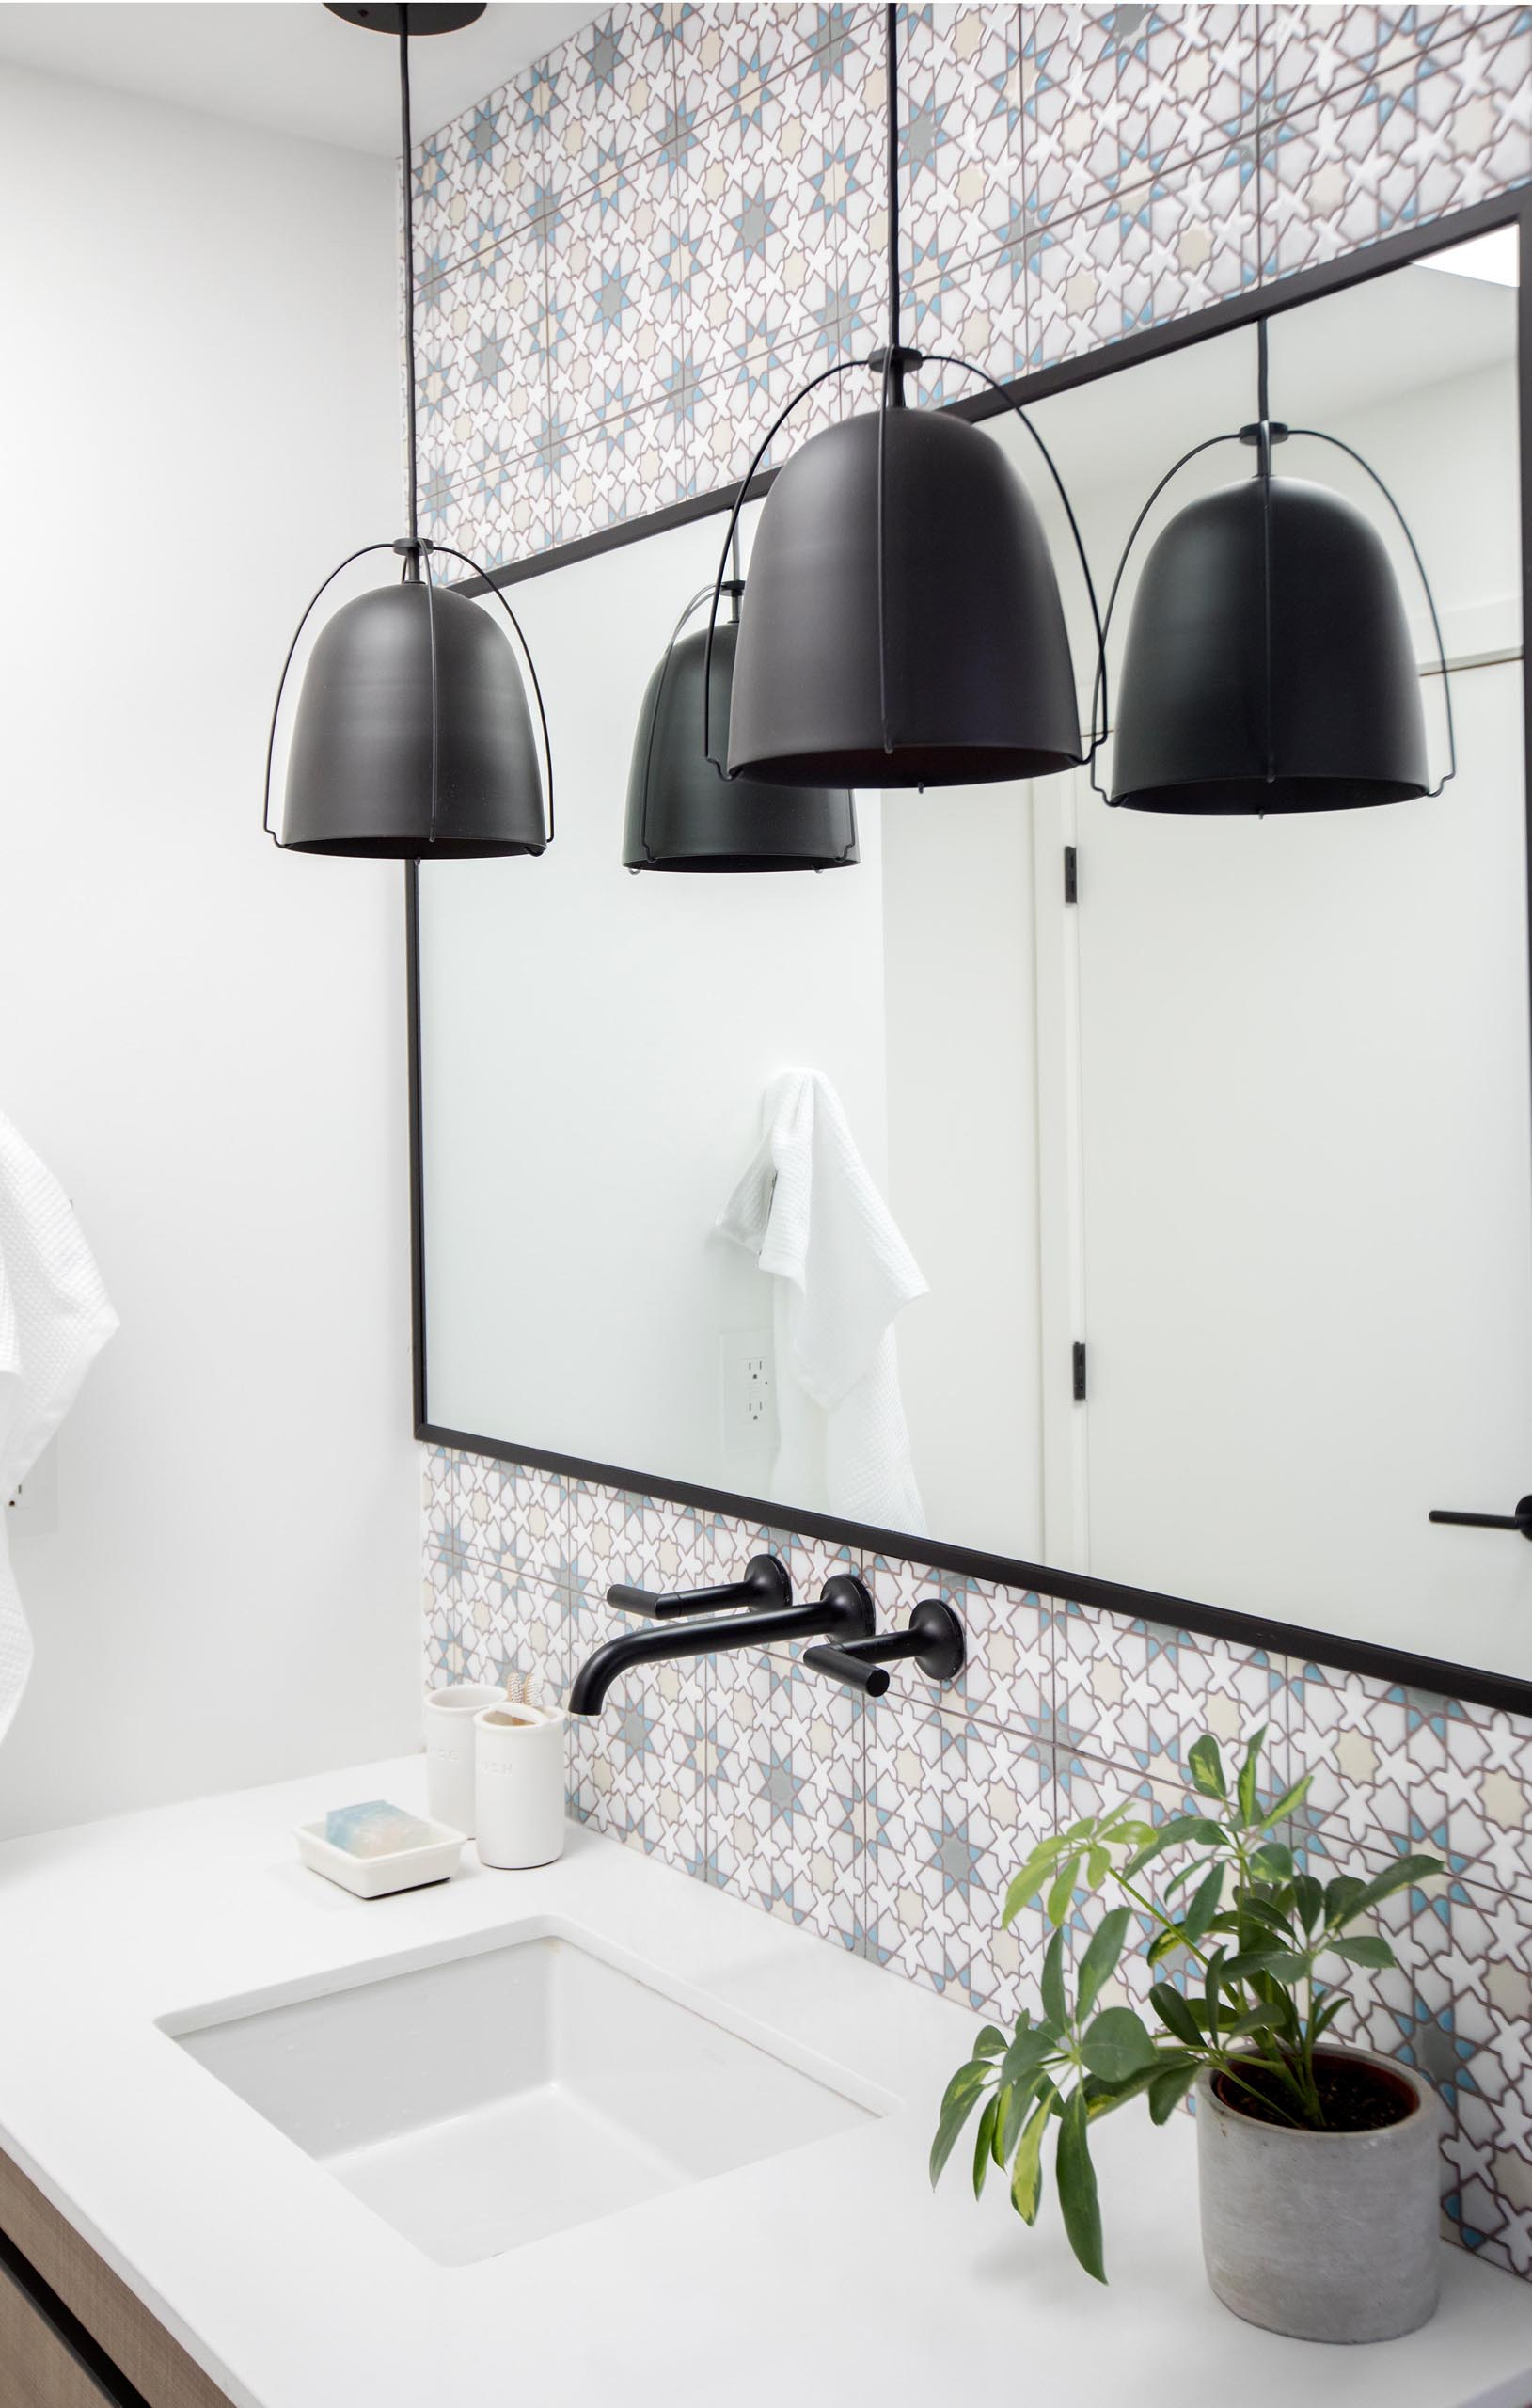 In this modern bathroom, patterned tiles have been used to designate the vanity, while black pendant lights complement the black mirror frame and shower curtain rod.